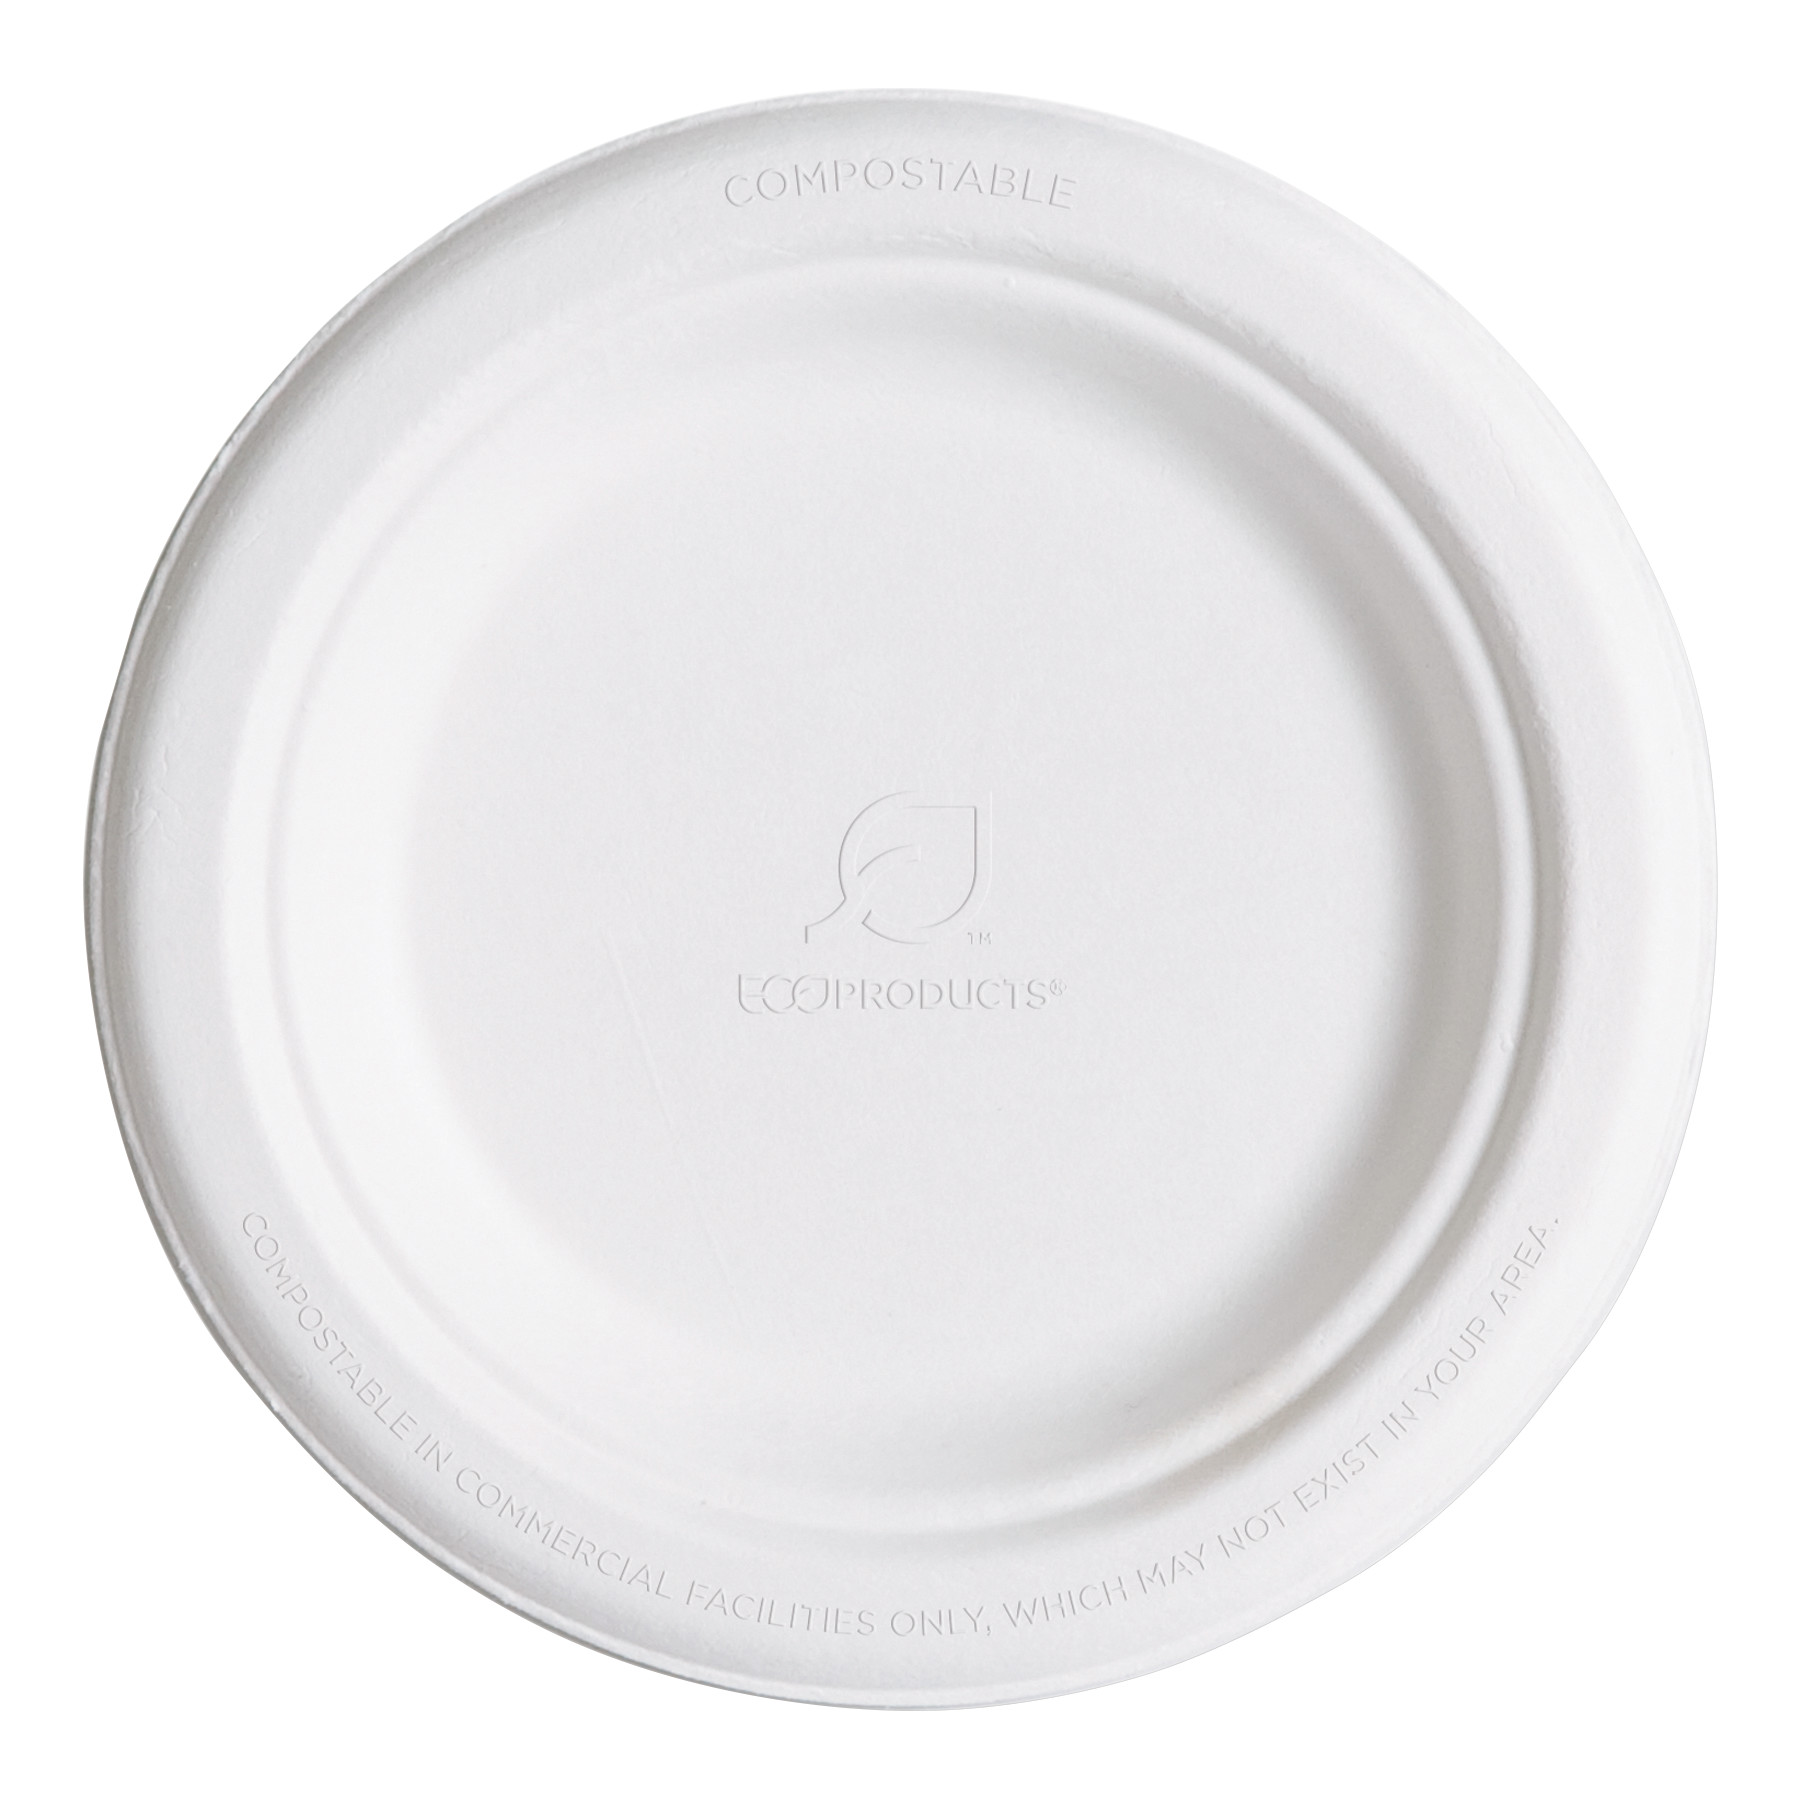 Eco-Products Renewable u0026 Compostable Sugarcane Plates 6  1000/Carton  sc 1 st  Walmart & Eco-Products Renewable u0026 Compostable Sugarcane Plates 6